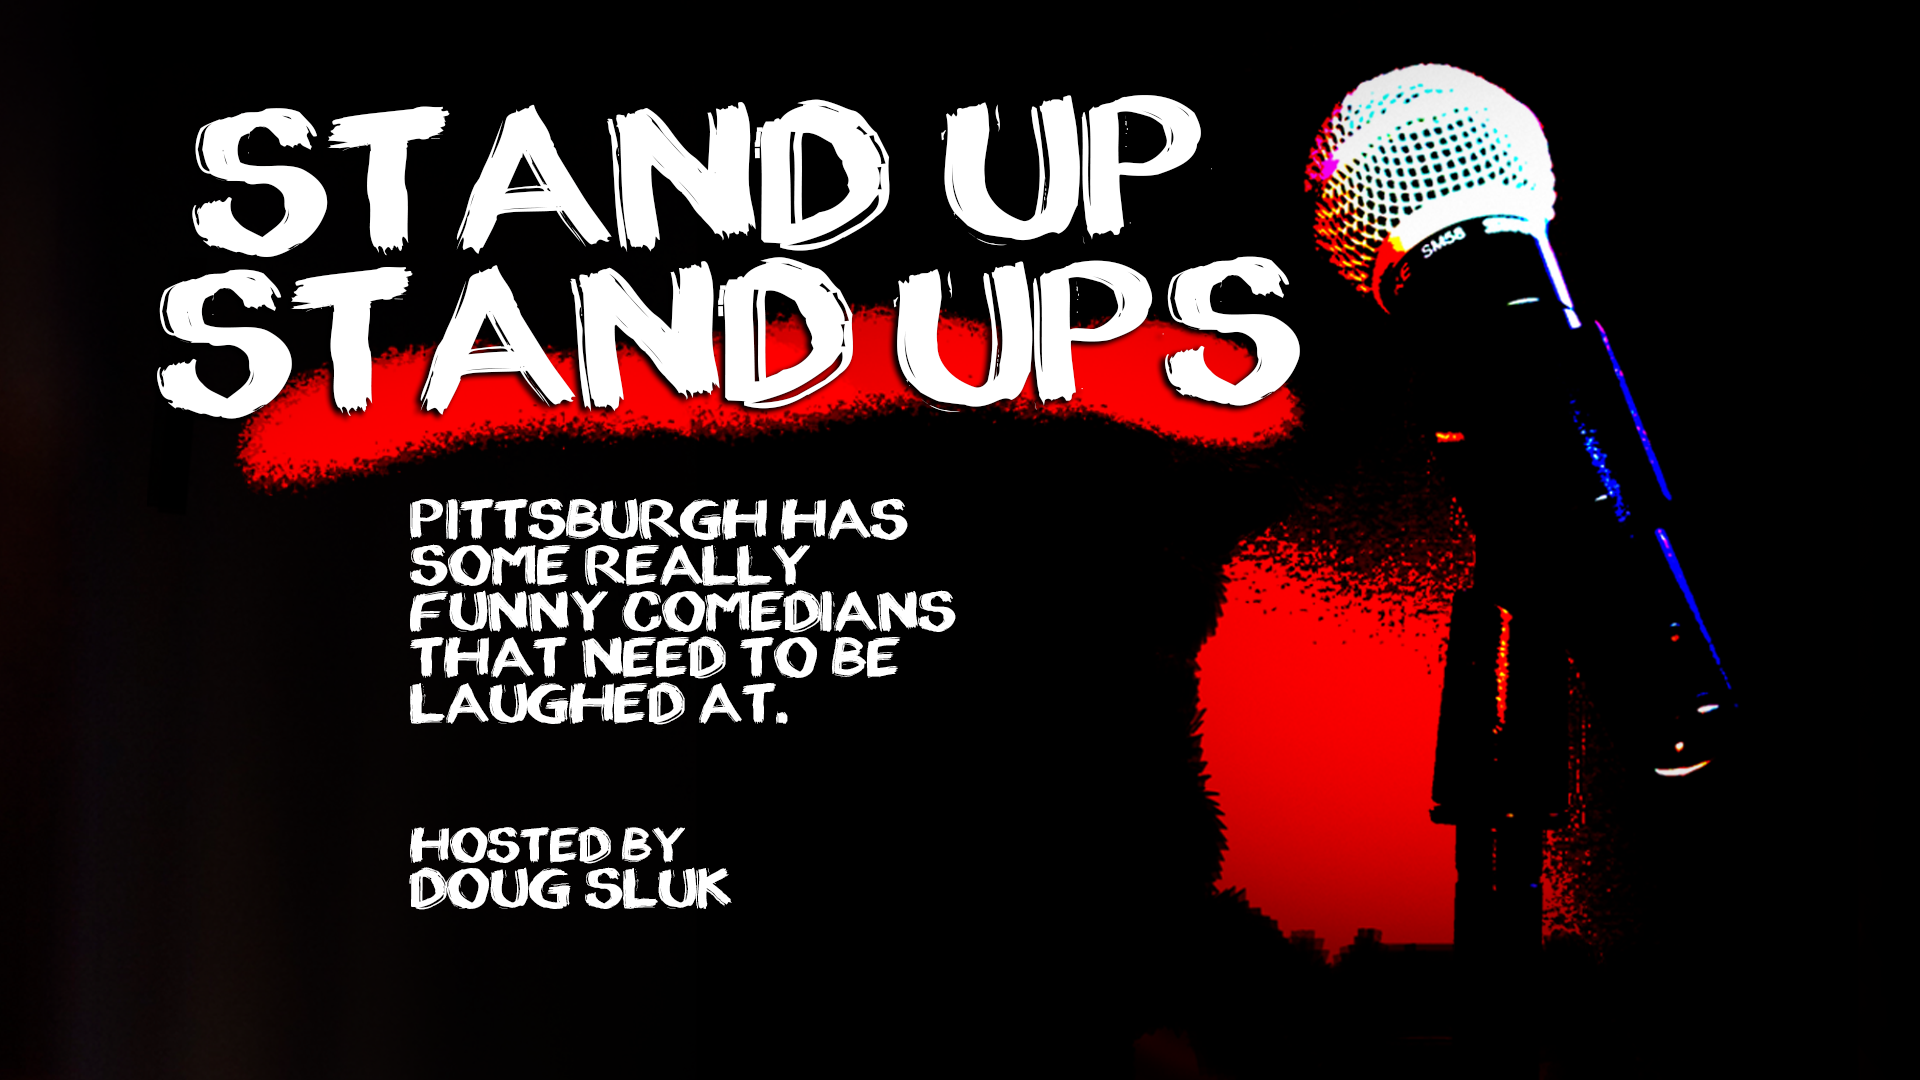 Stand Up Stand-Ups 1080x1920.png